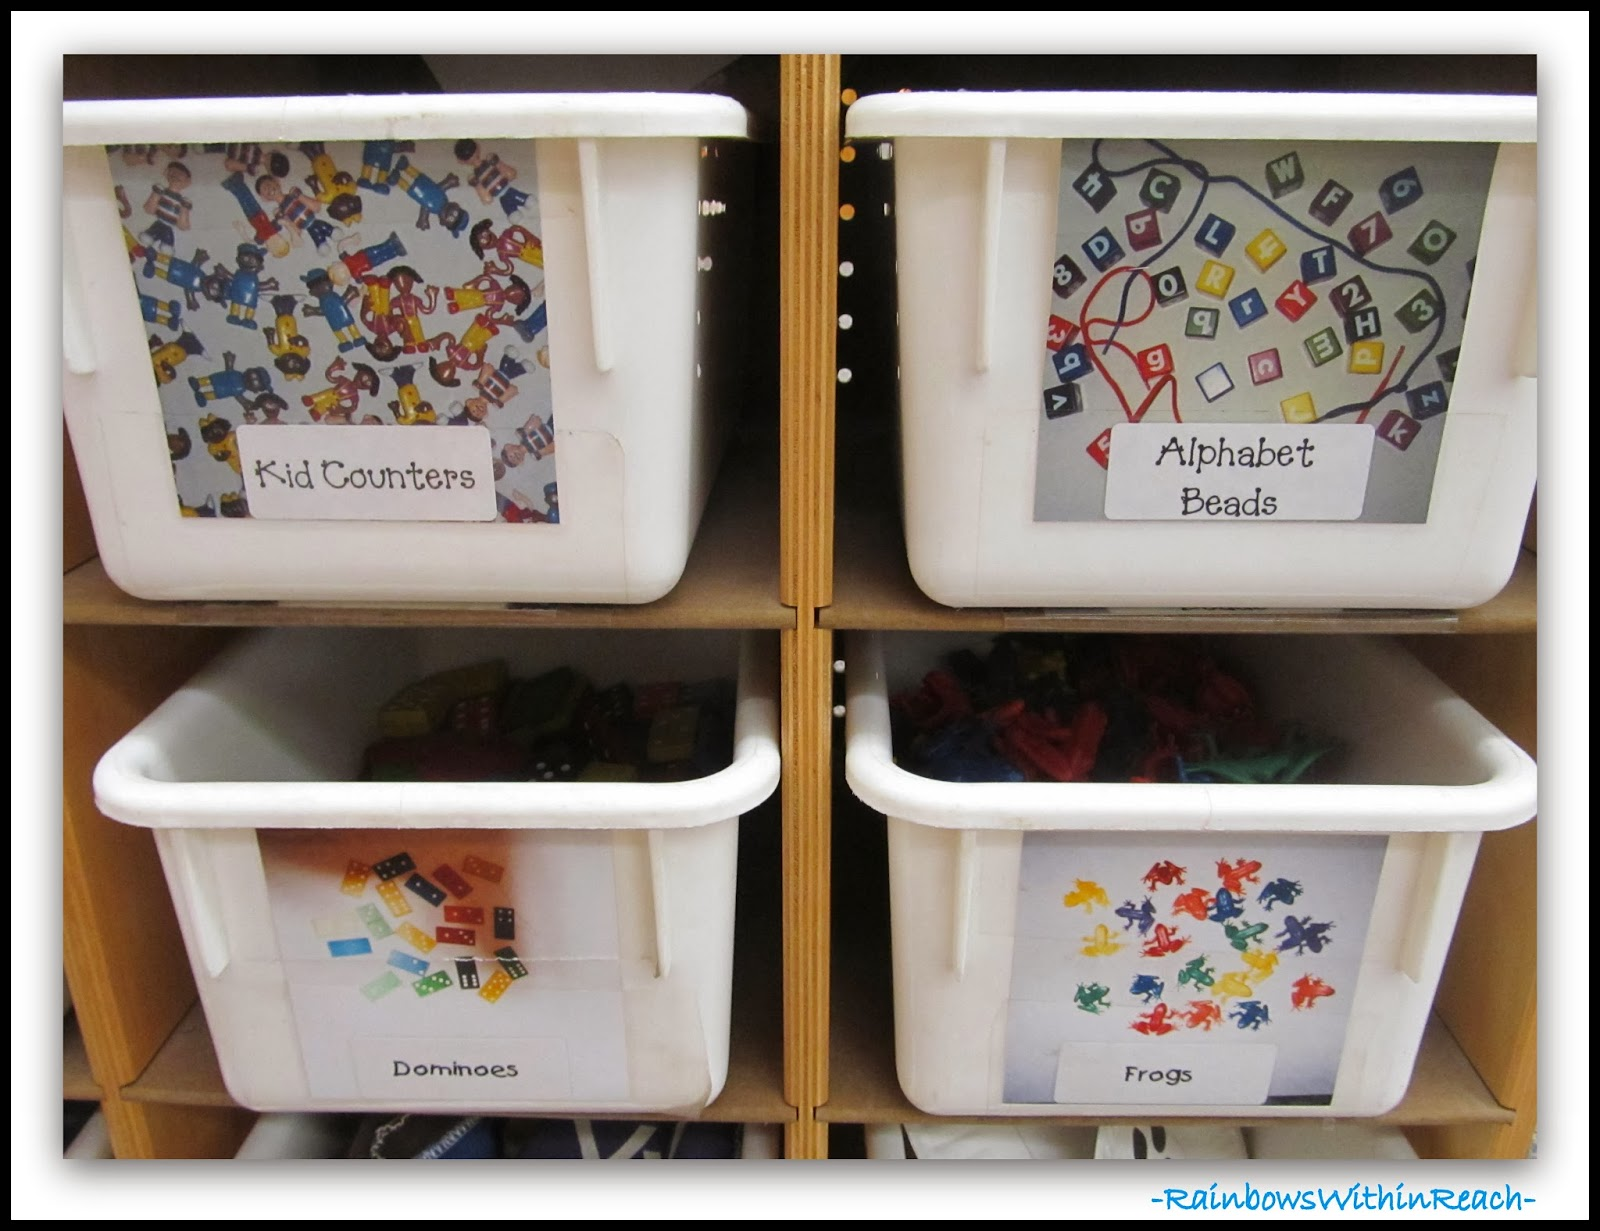 Classroom Storage Ideas Uk ~ Rainbowswithinreach ideas for classroom organization